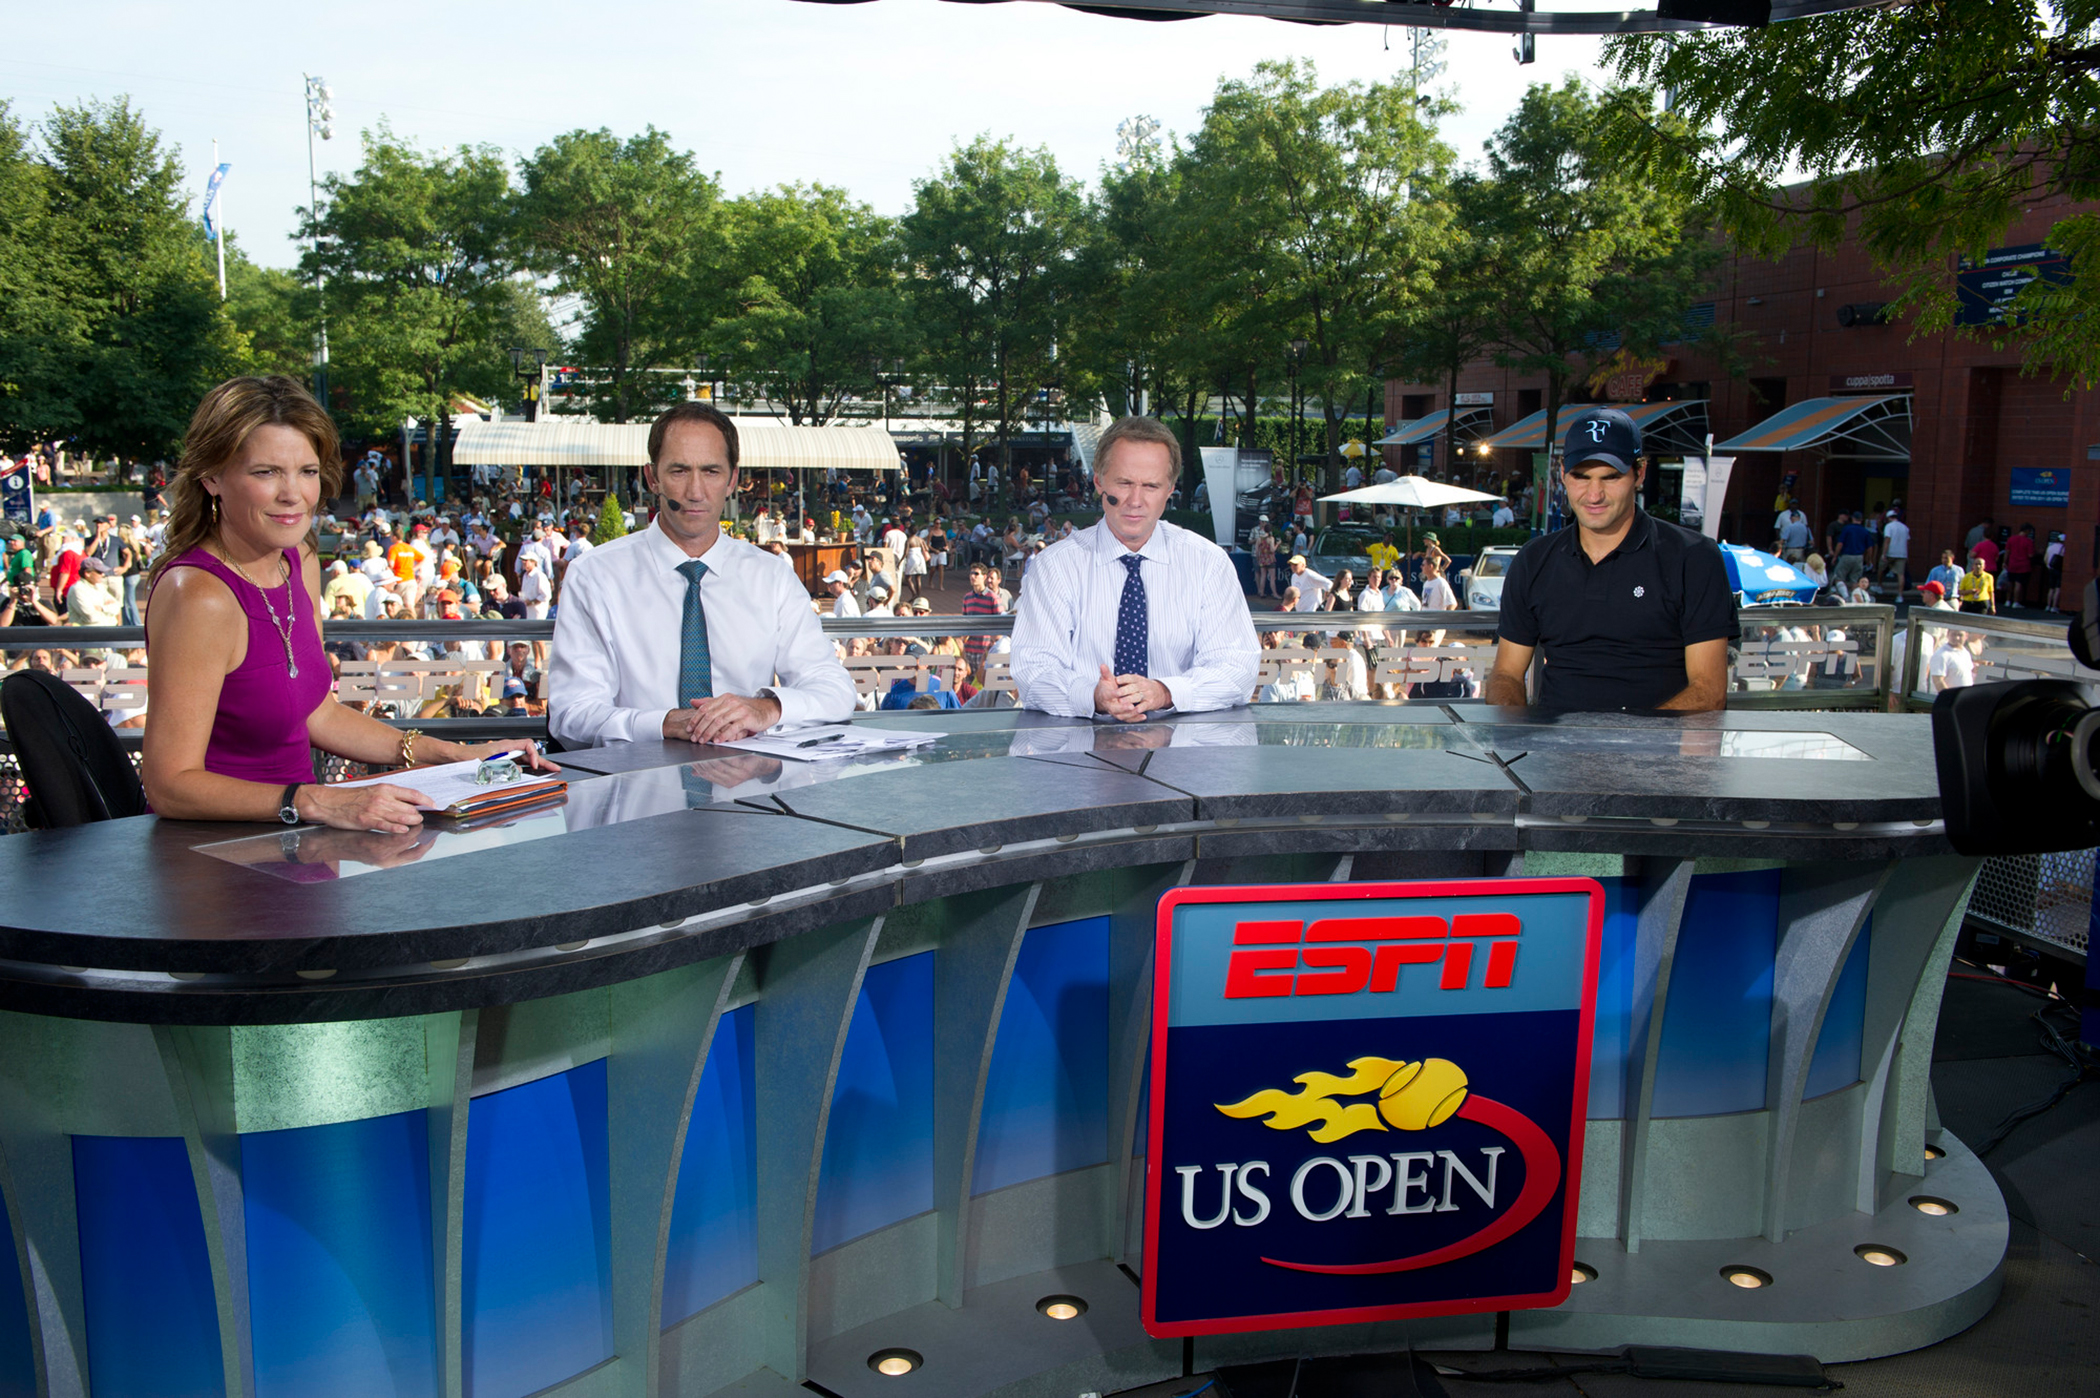 ESPN host Hannah Storm, tennis analysts Darren Cahill and Patrick McEnroe with guest Roger Federer of Switzerland on the on-site set for the US Open Tennis Championships at the USTA Billie Jean King National Tennis Center, 2010.